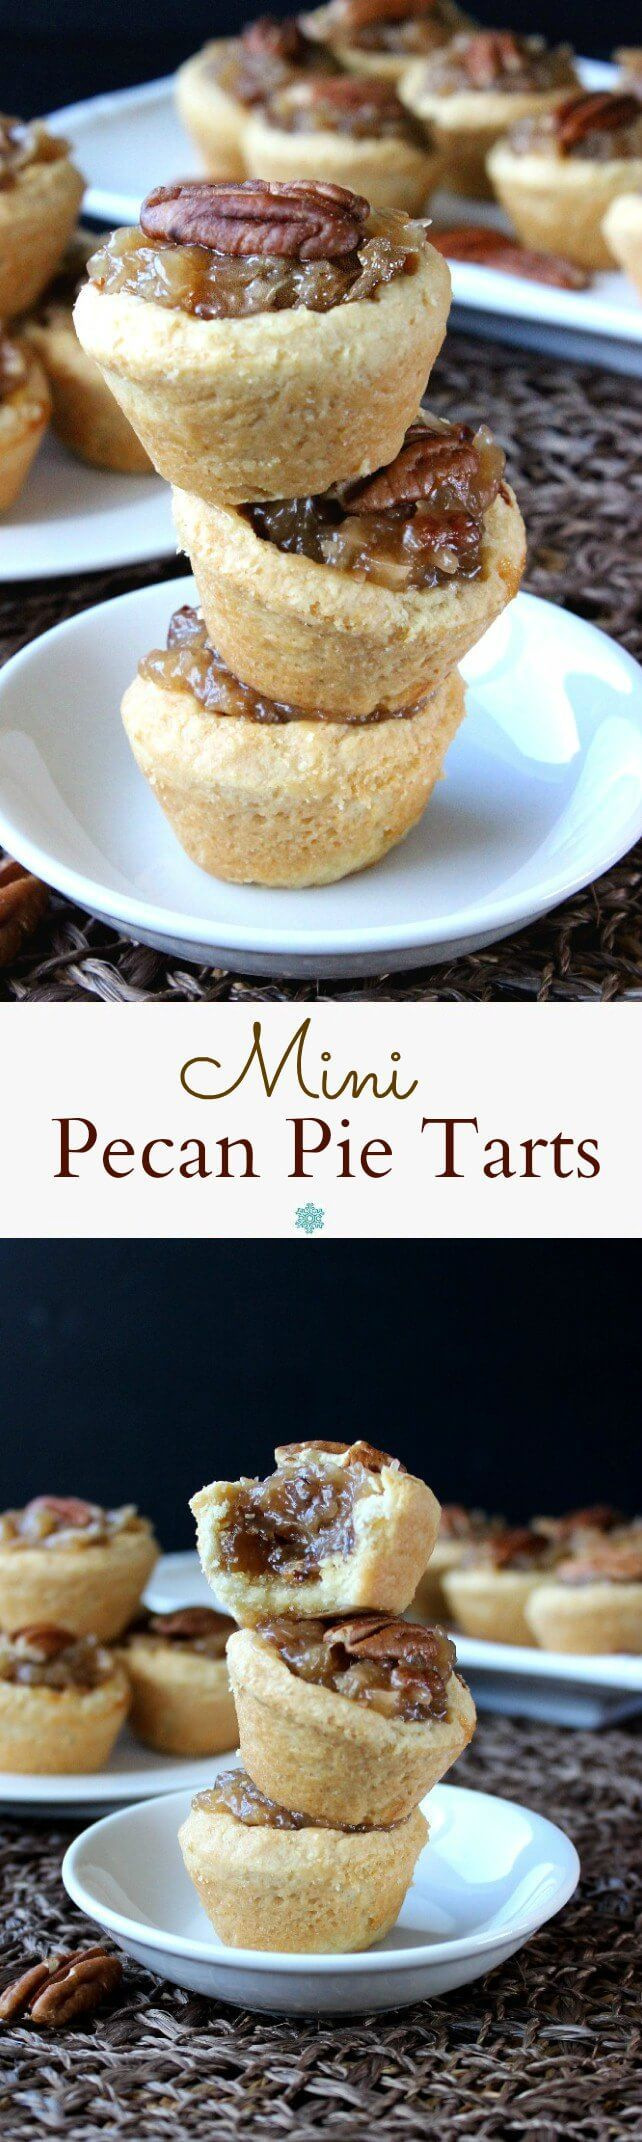 Mini Pecan Pie Tarts are over the top rich and perfect for the holidays. This dessert fits right in at any family gathering or through an elegant party.